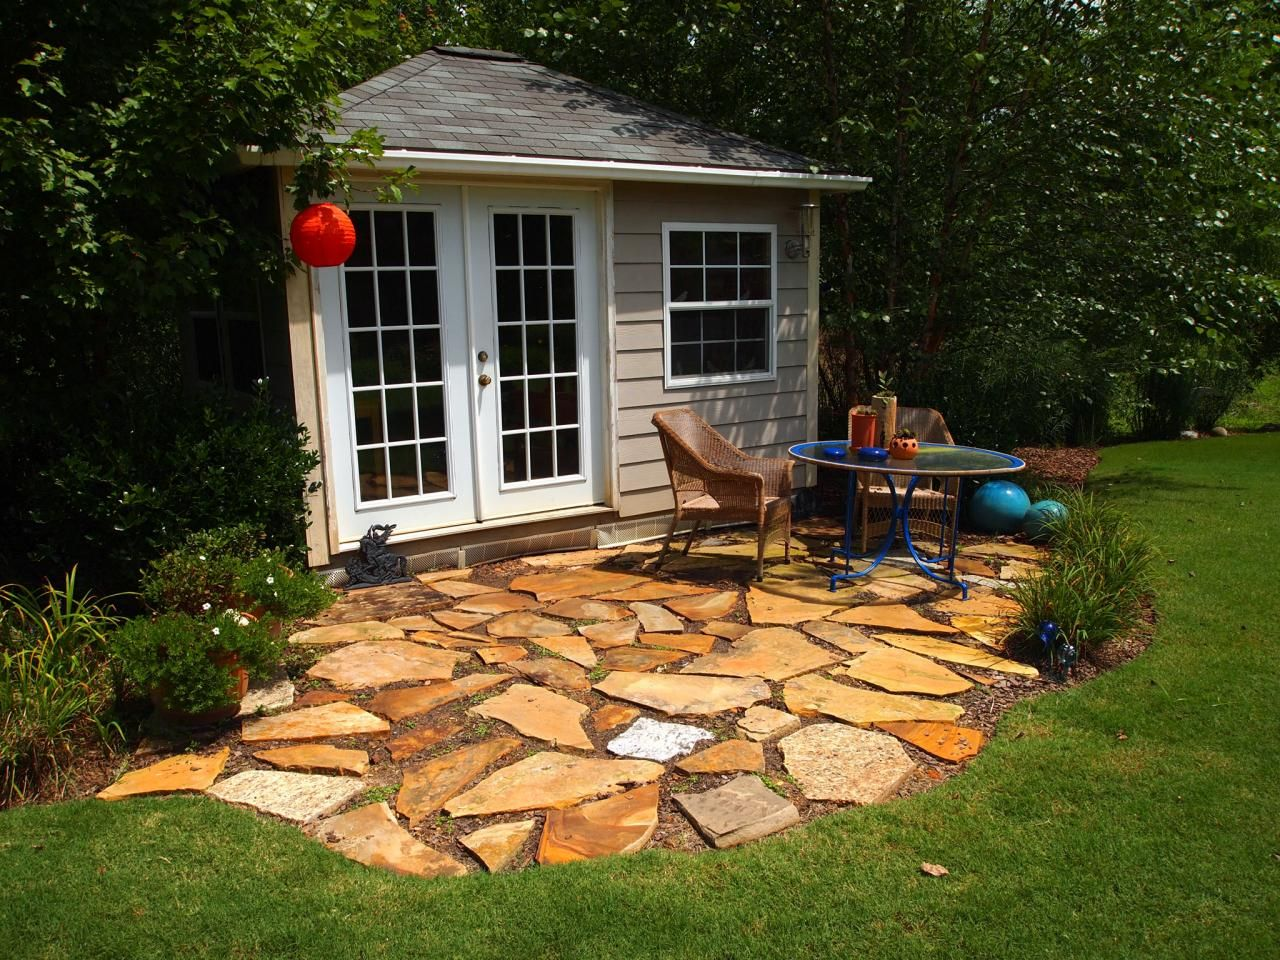 Merveilleux Garden Shed With Paver Patio